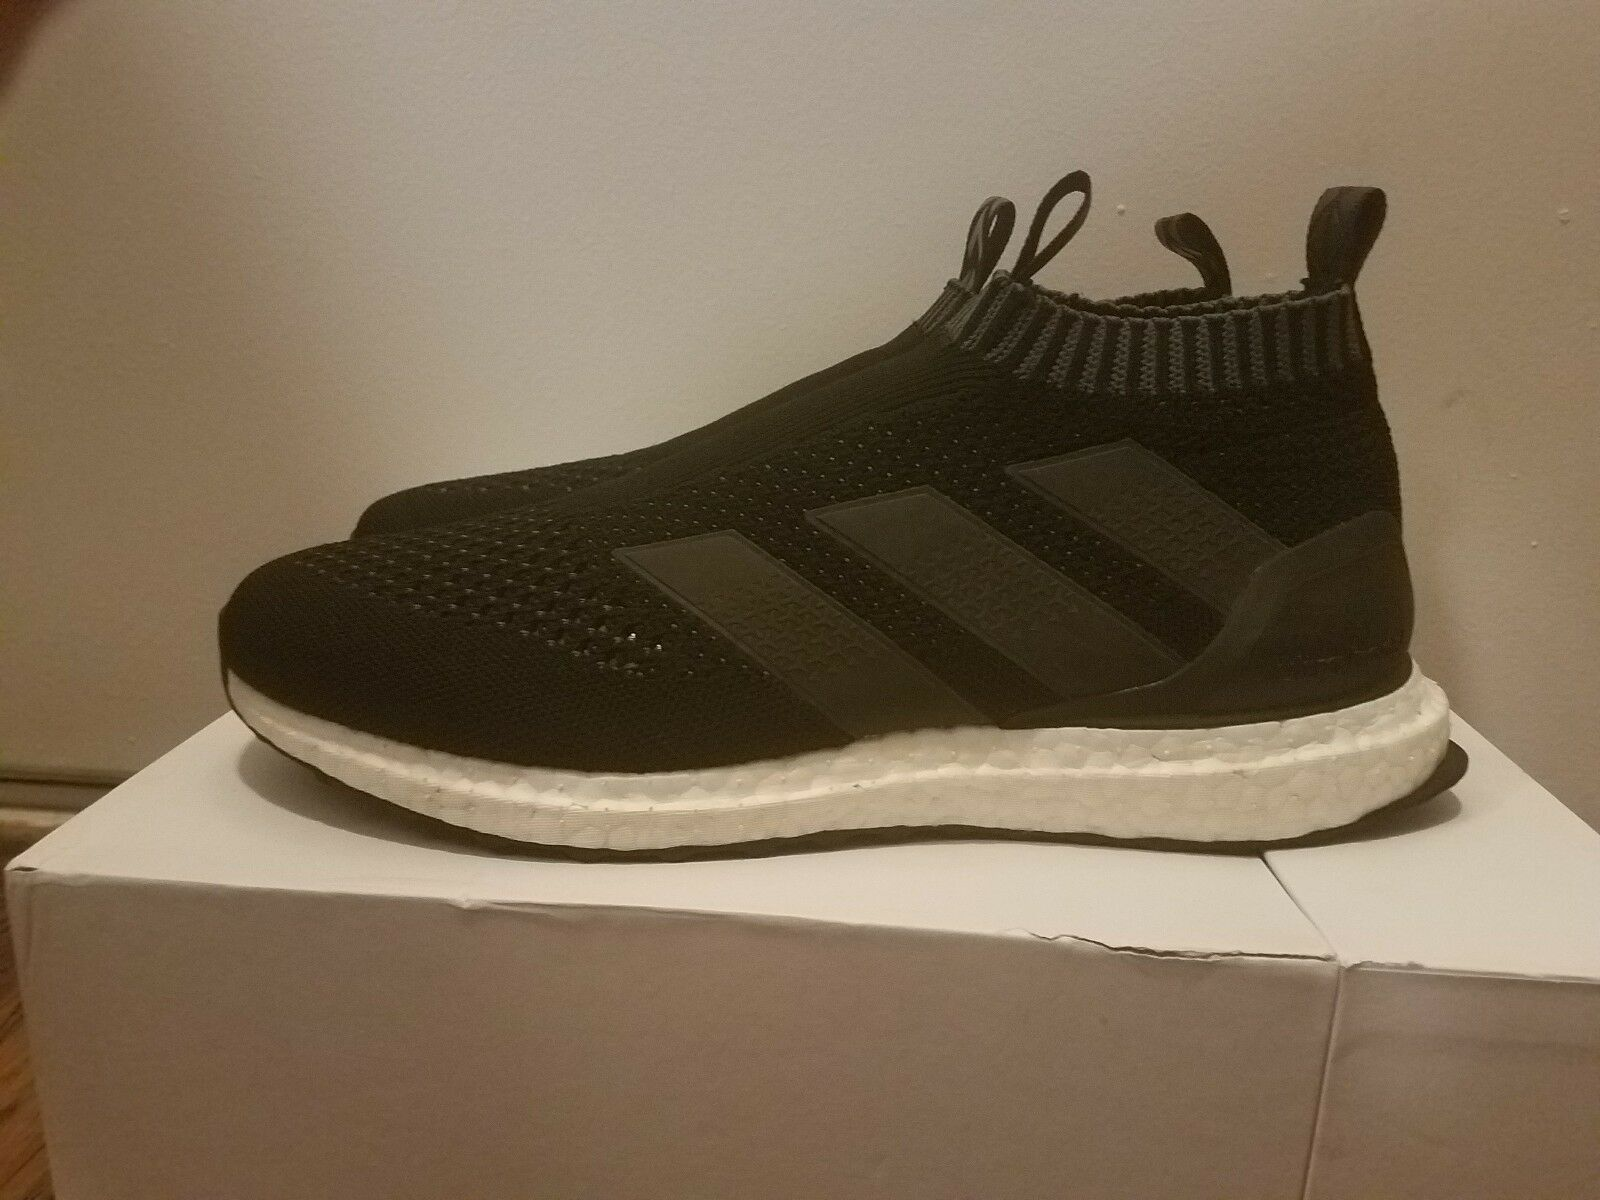 Adidas Ultra Boost Ace 16+ PureControl Primeknit PK Black White Size 10 BY1688